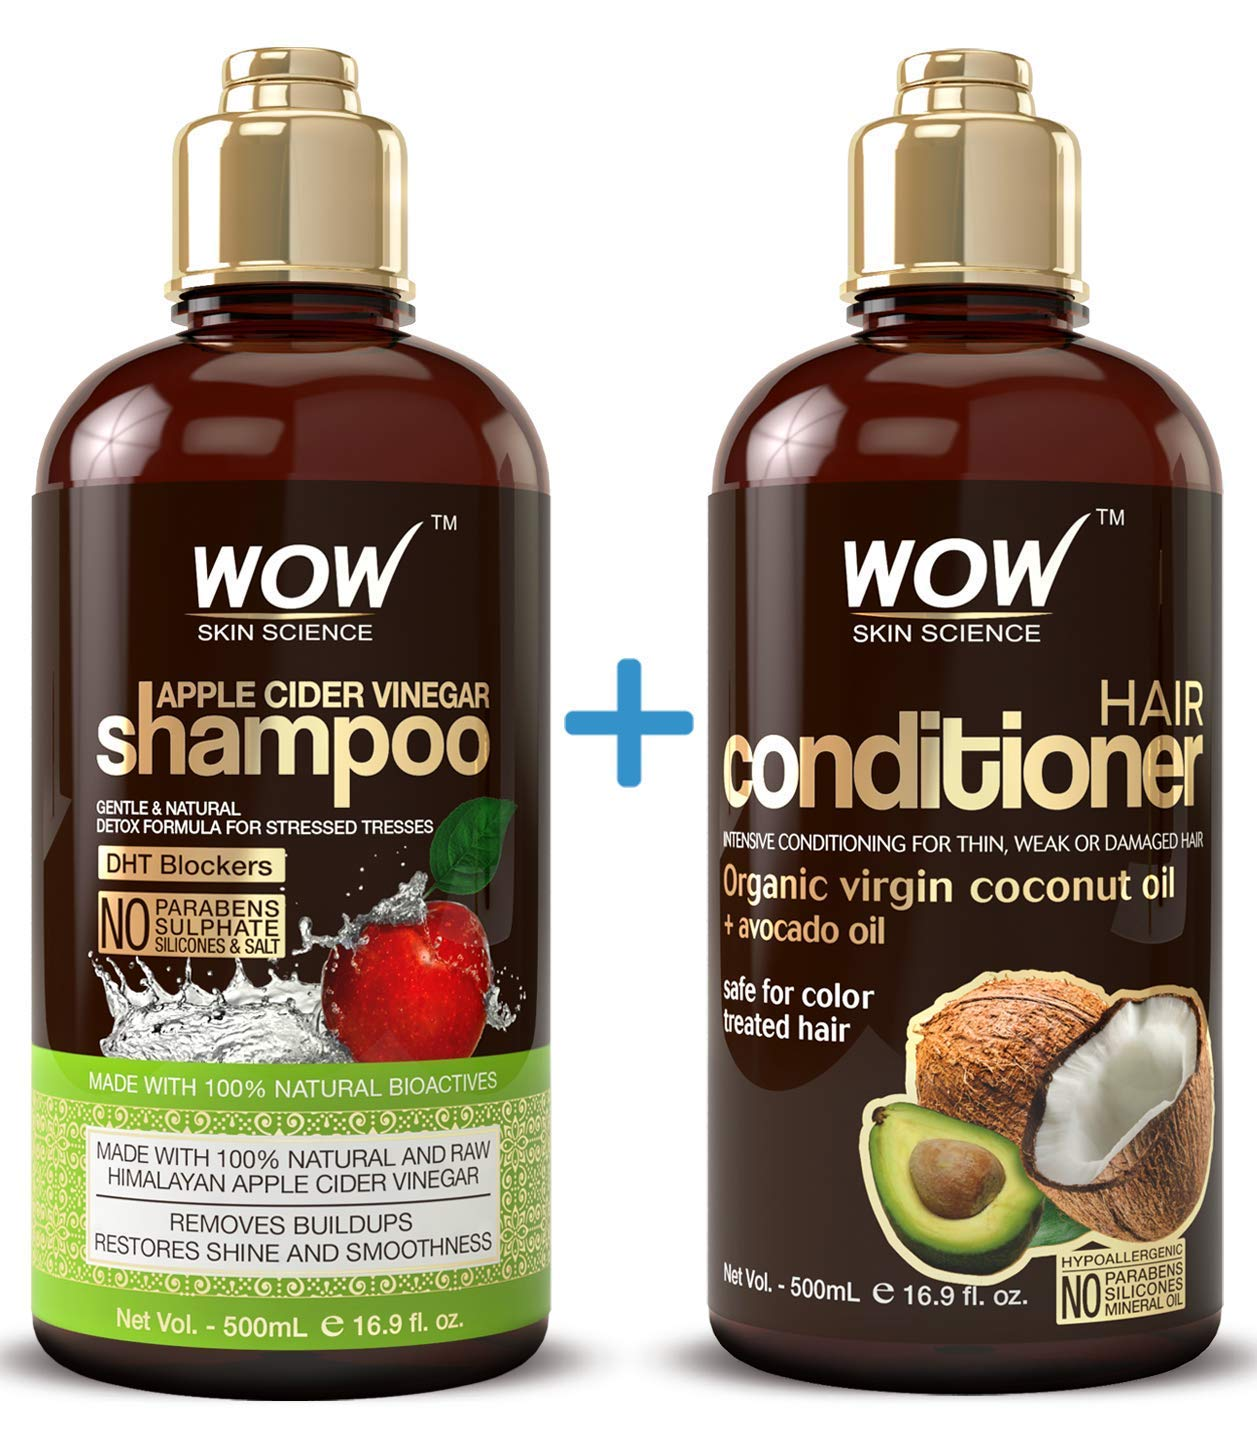 WOW Apple Cider Vinegar Shampoo & Hair Conditioner Set - (2 x 16.9 Fl Oz / 500mL) - Increase Gloss, Hydration, Shine - Reduce Itchy Scalp, Dandruff & Frizz - No Parabens or Sulfates - All Hair Types by BUYWOW